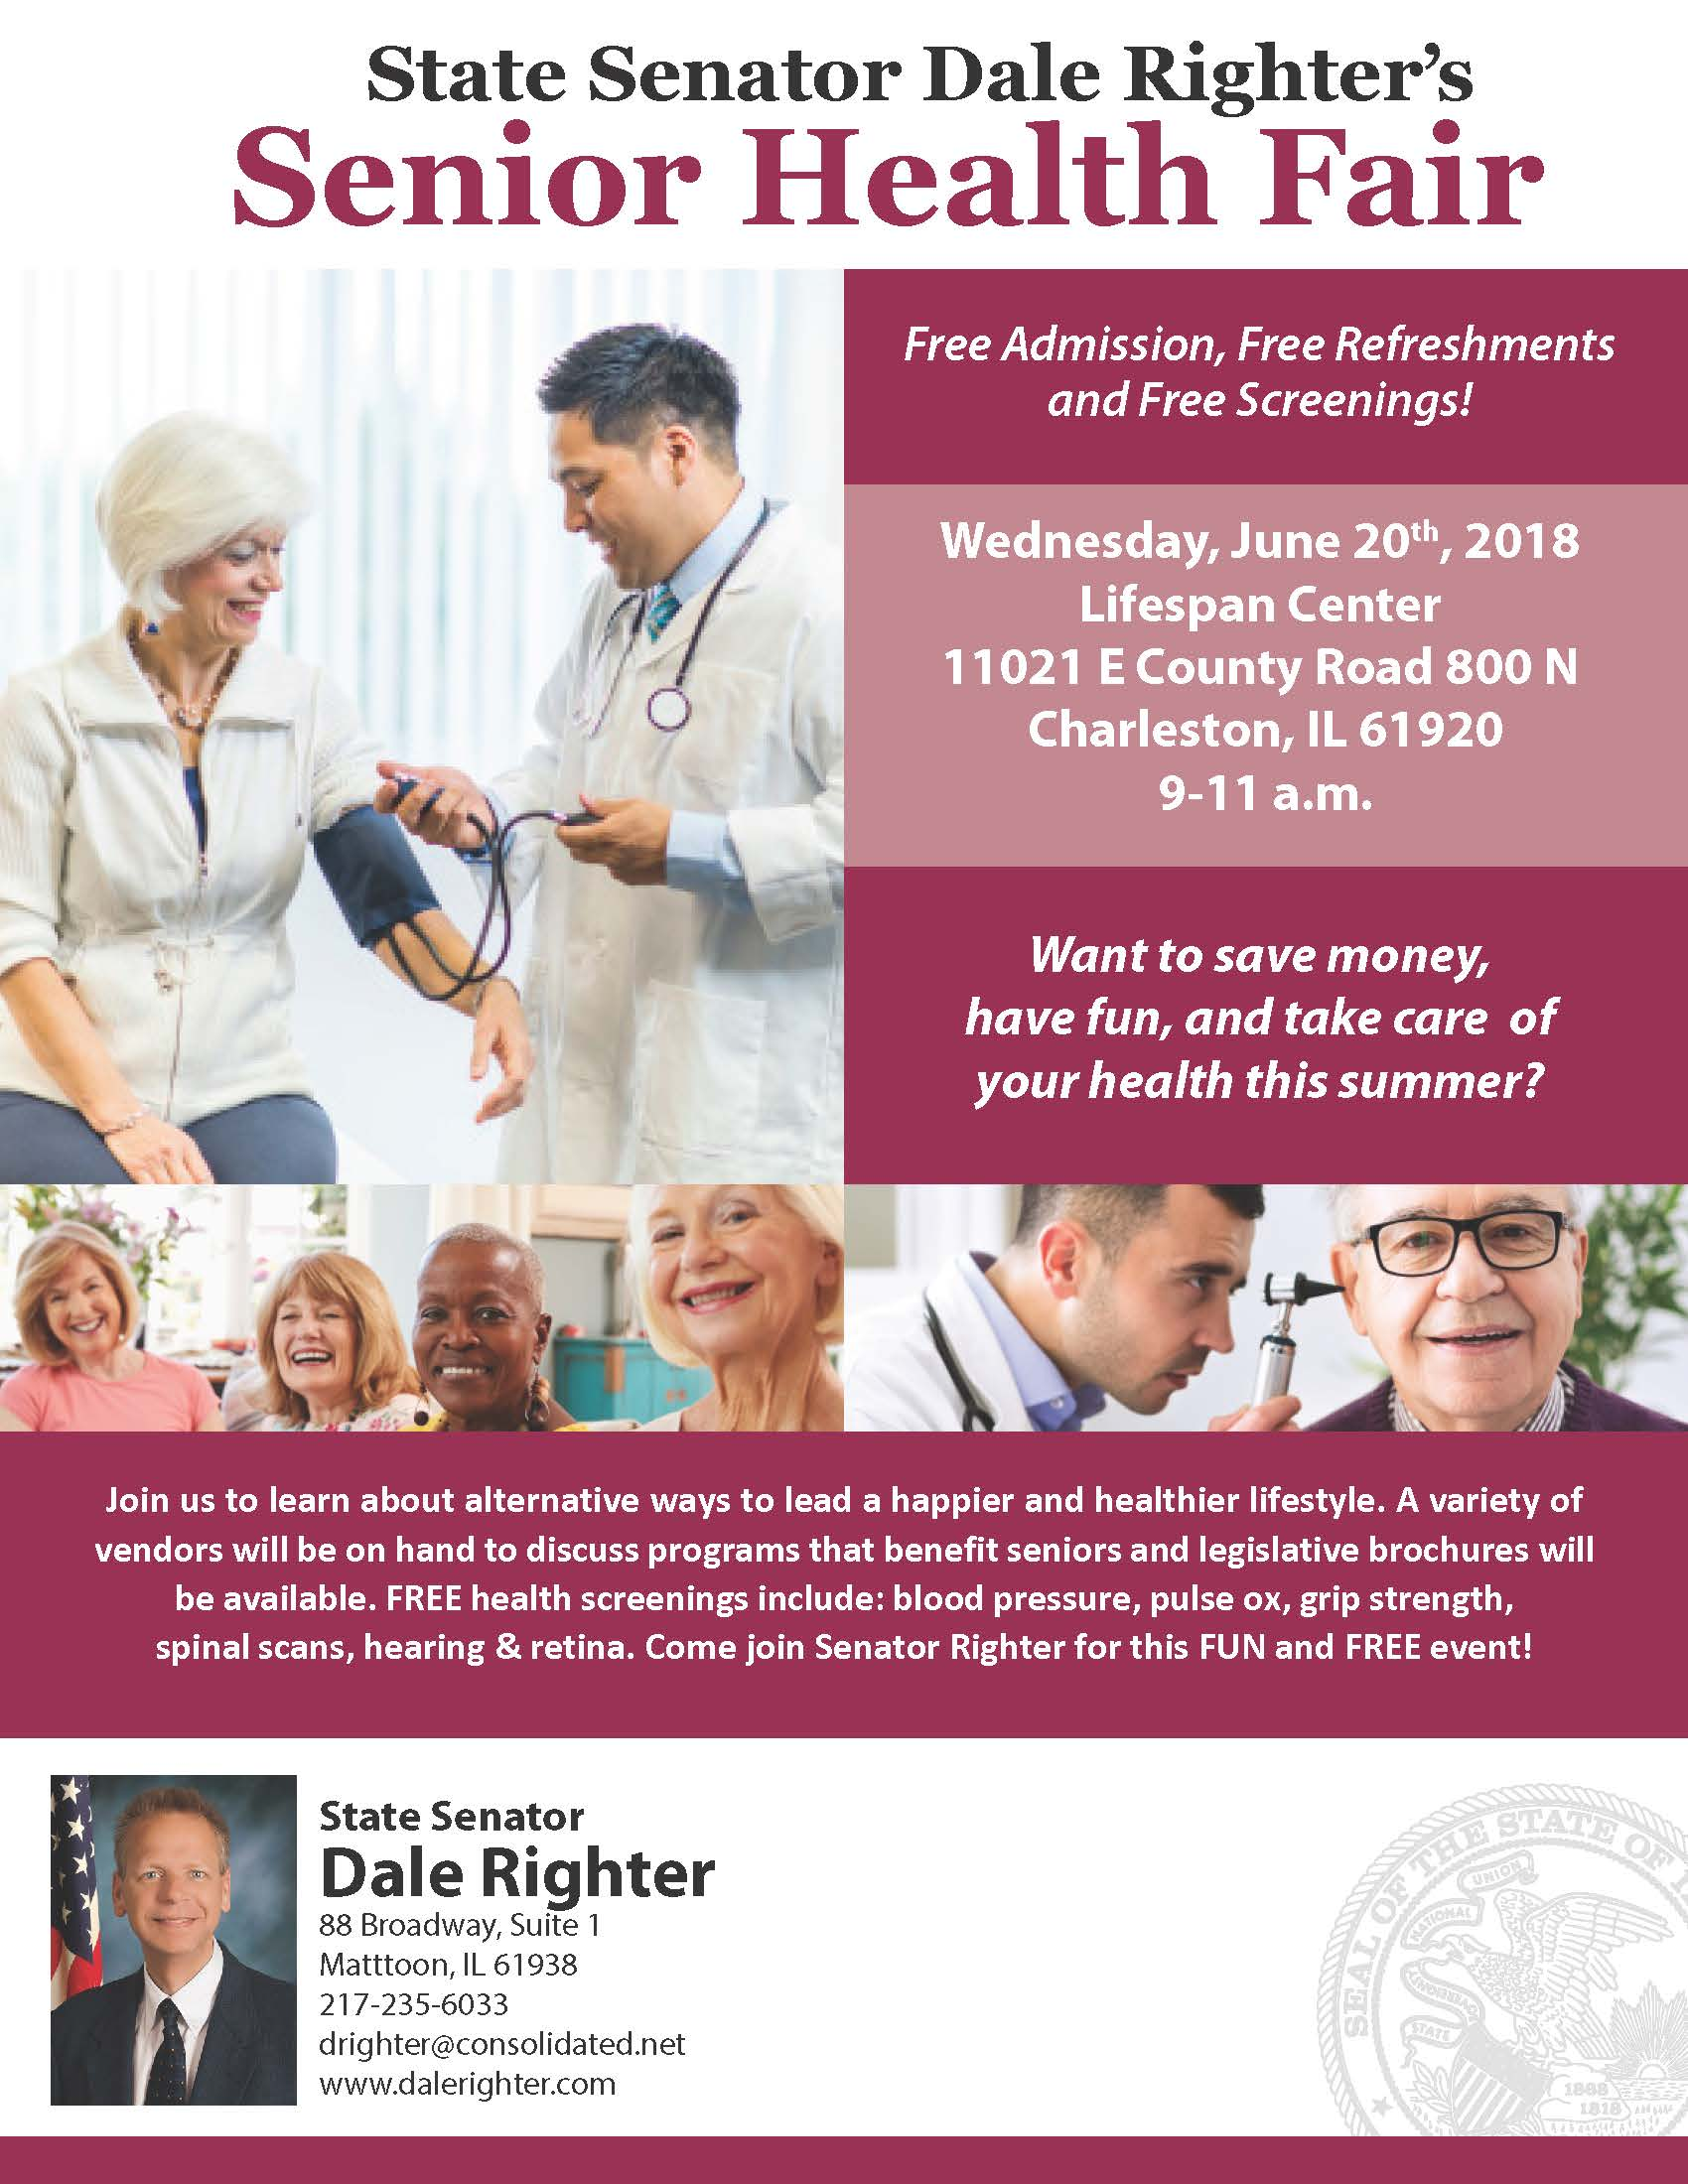 State Senator Righter to host Free Senior Health Fair at Lifespan Center